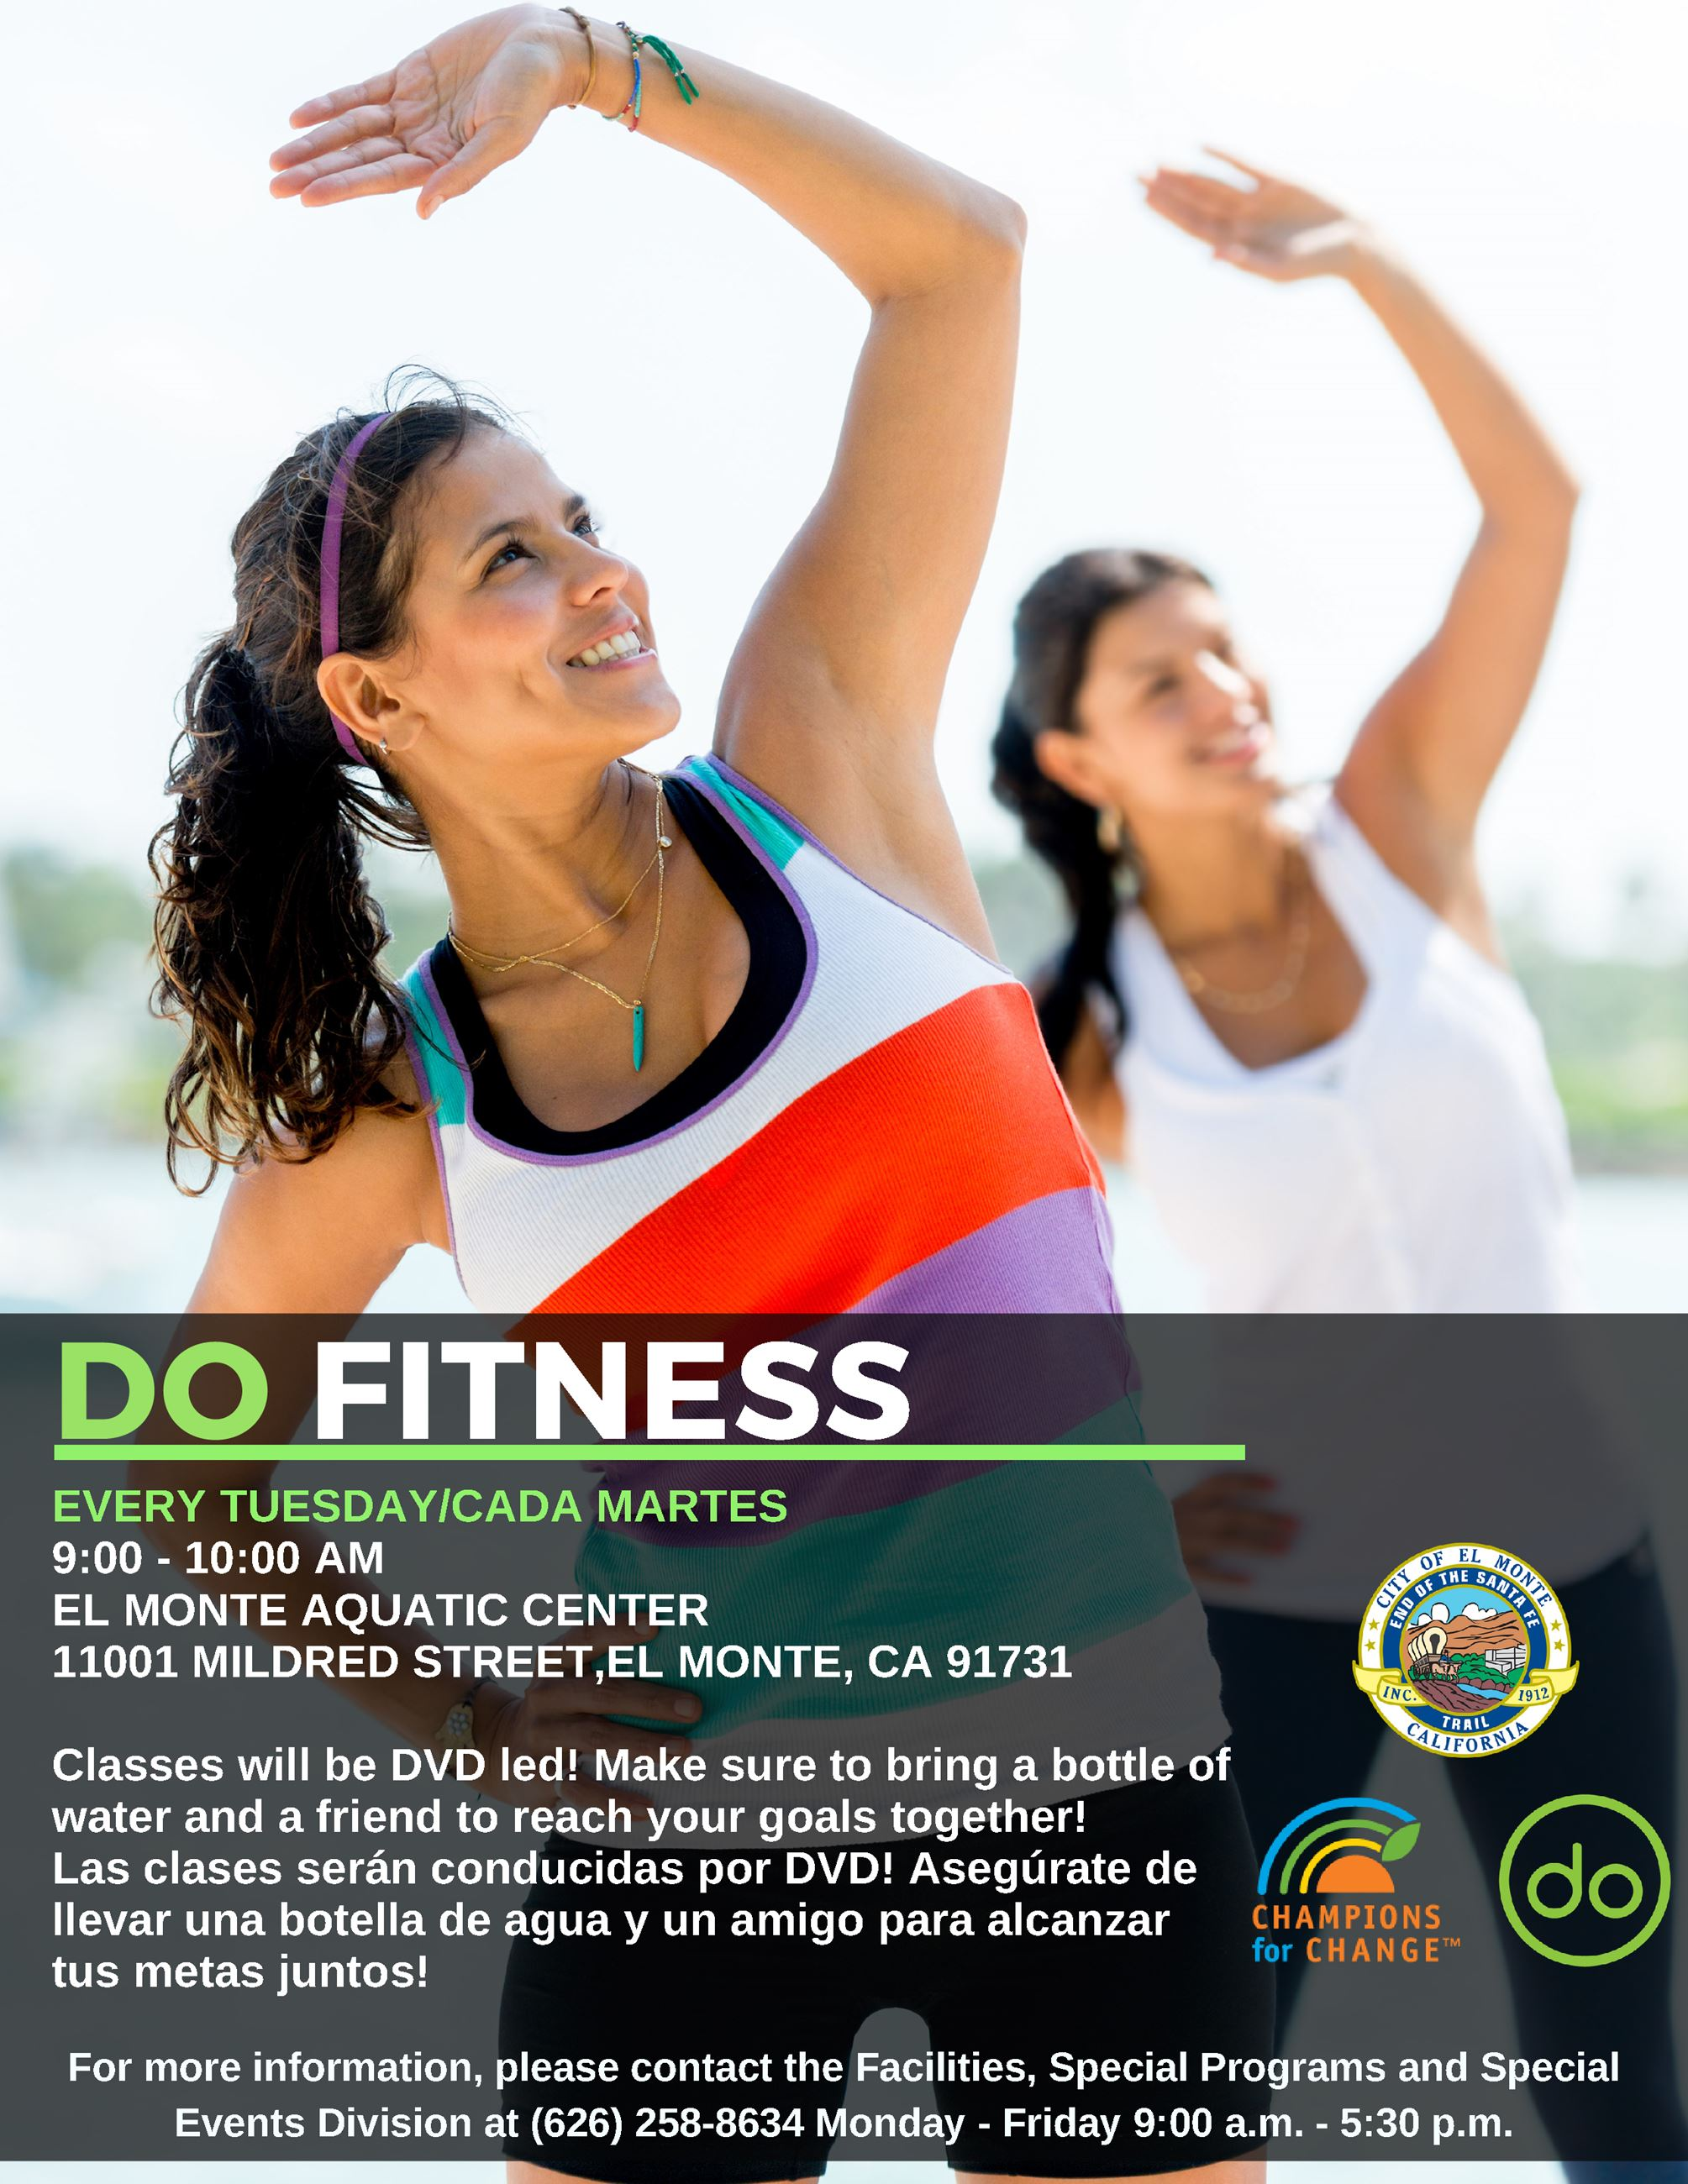 DO Fitness Flyer